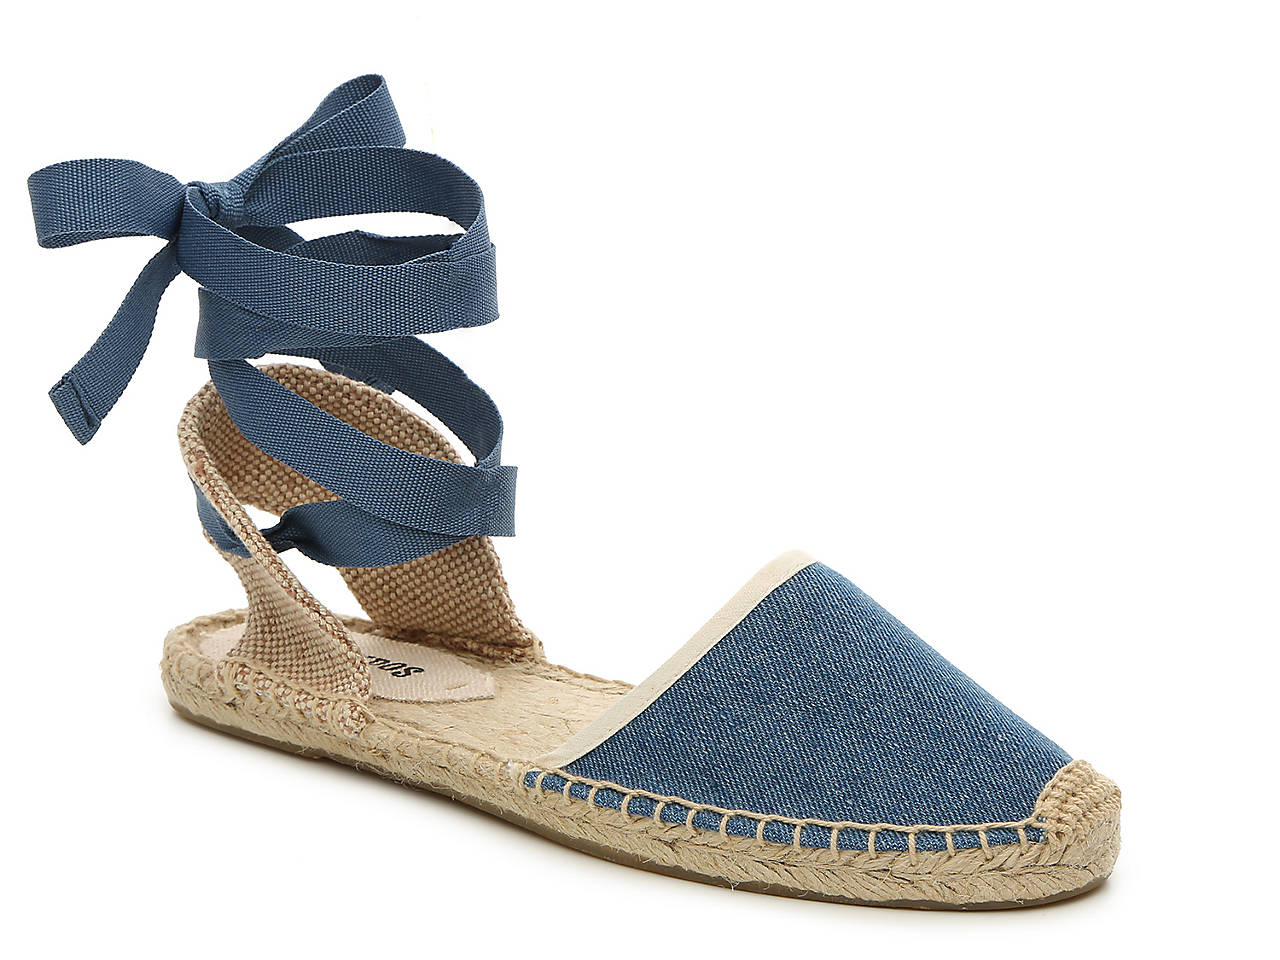 171955ff0344 Soludos Classic Denim Espadrille Sandal Women s Shoes